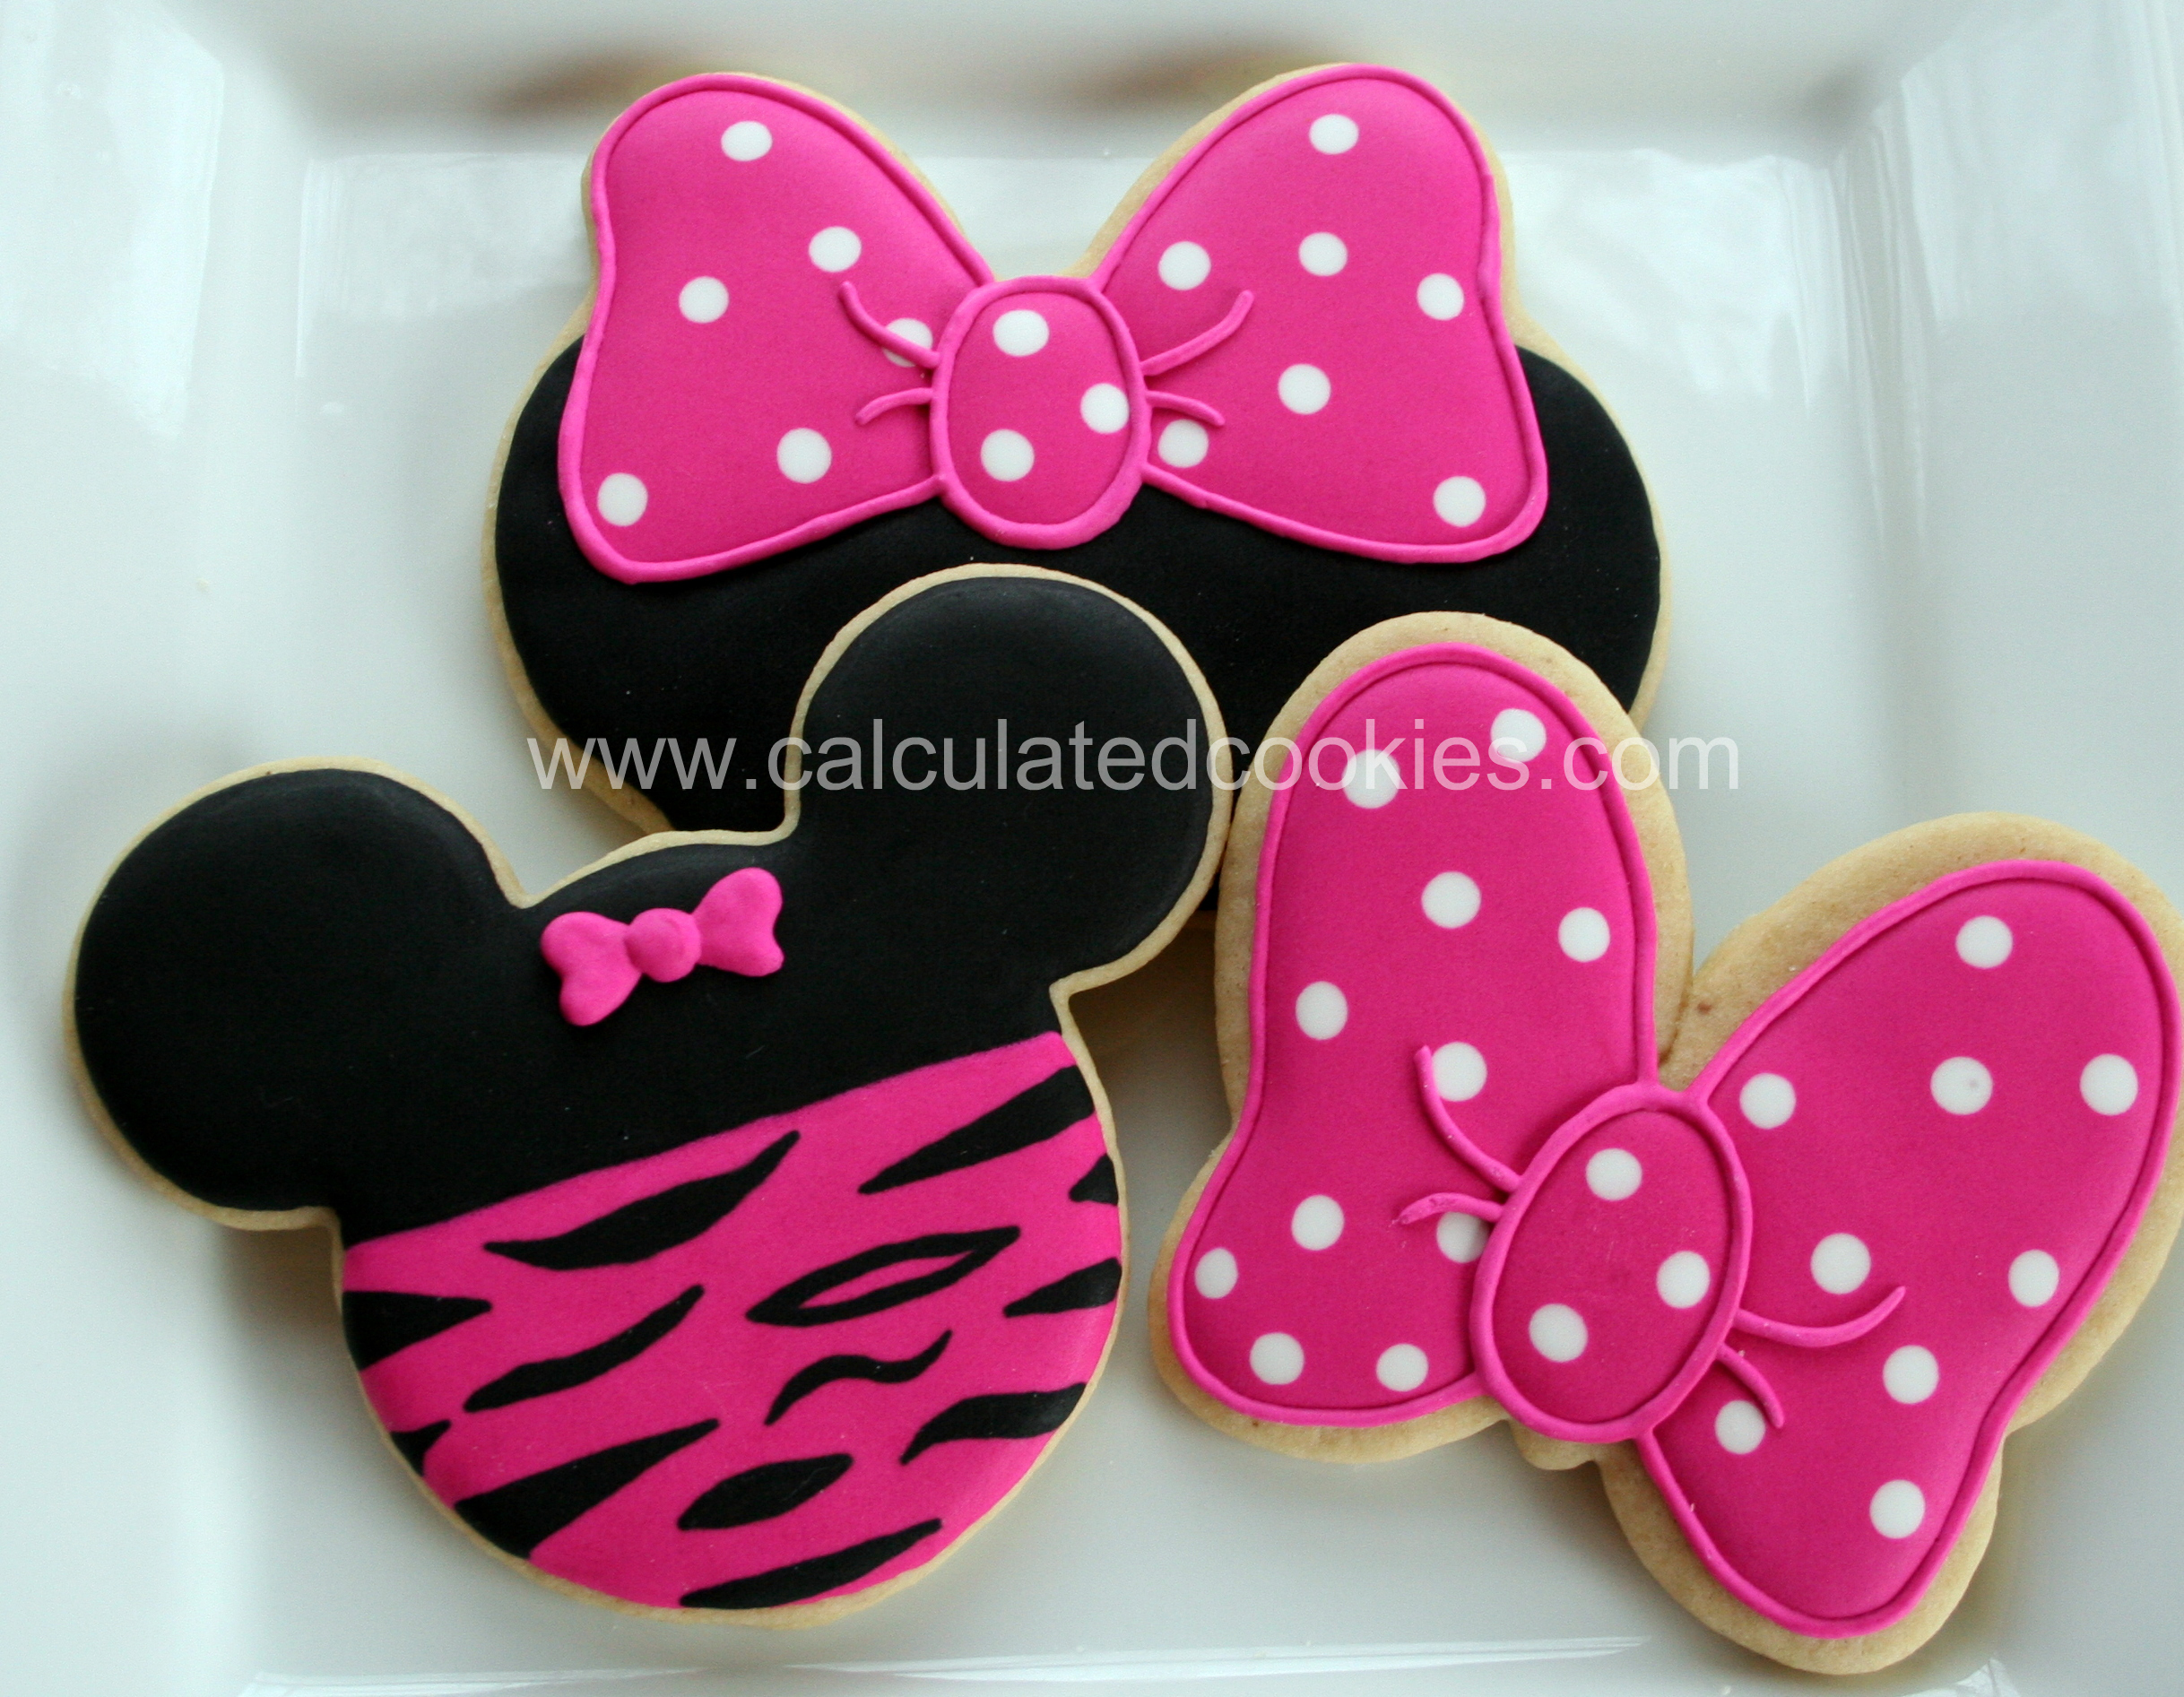 Minnie Mouse Sugar Cookies Calculated CookiesCalculated Cookies